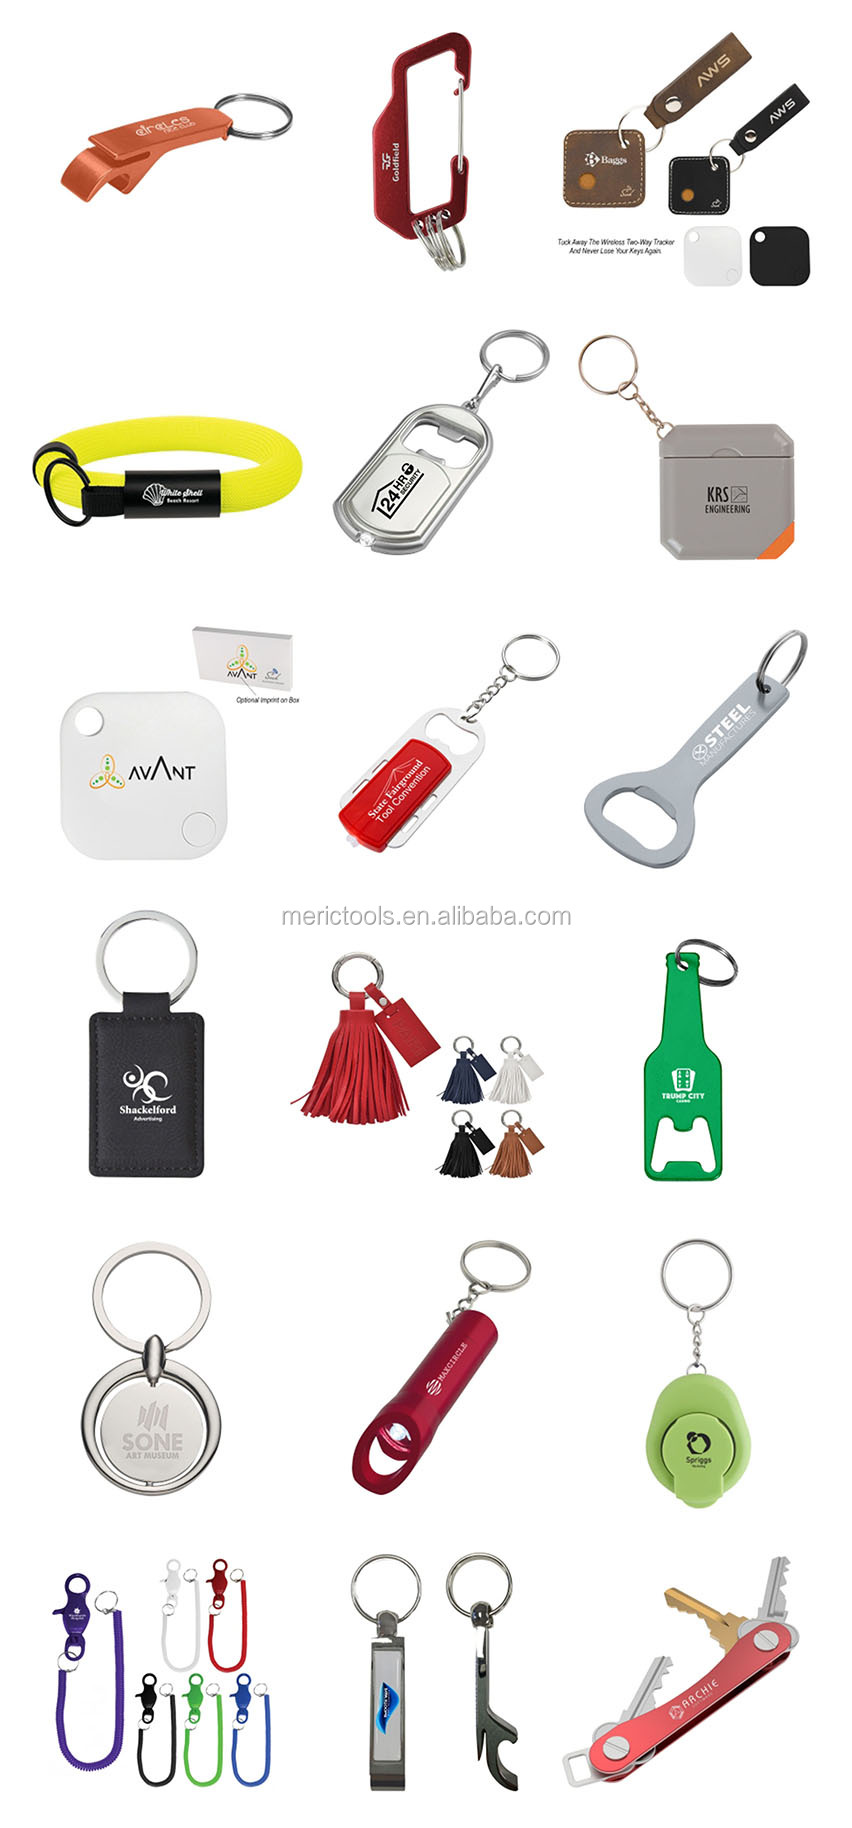 Keystand+ Hands-Free Phone Stand Key Chain